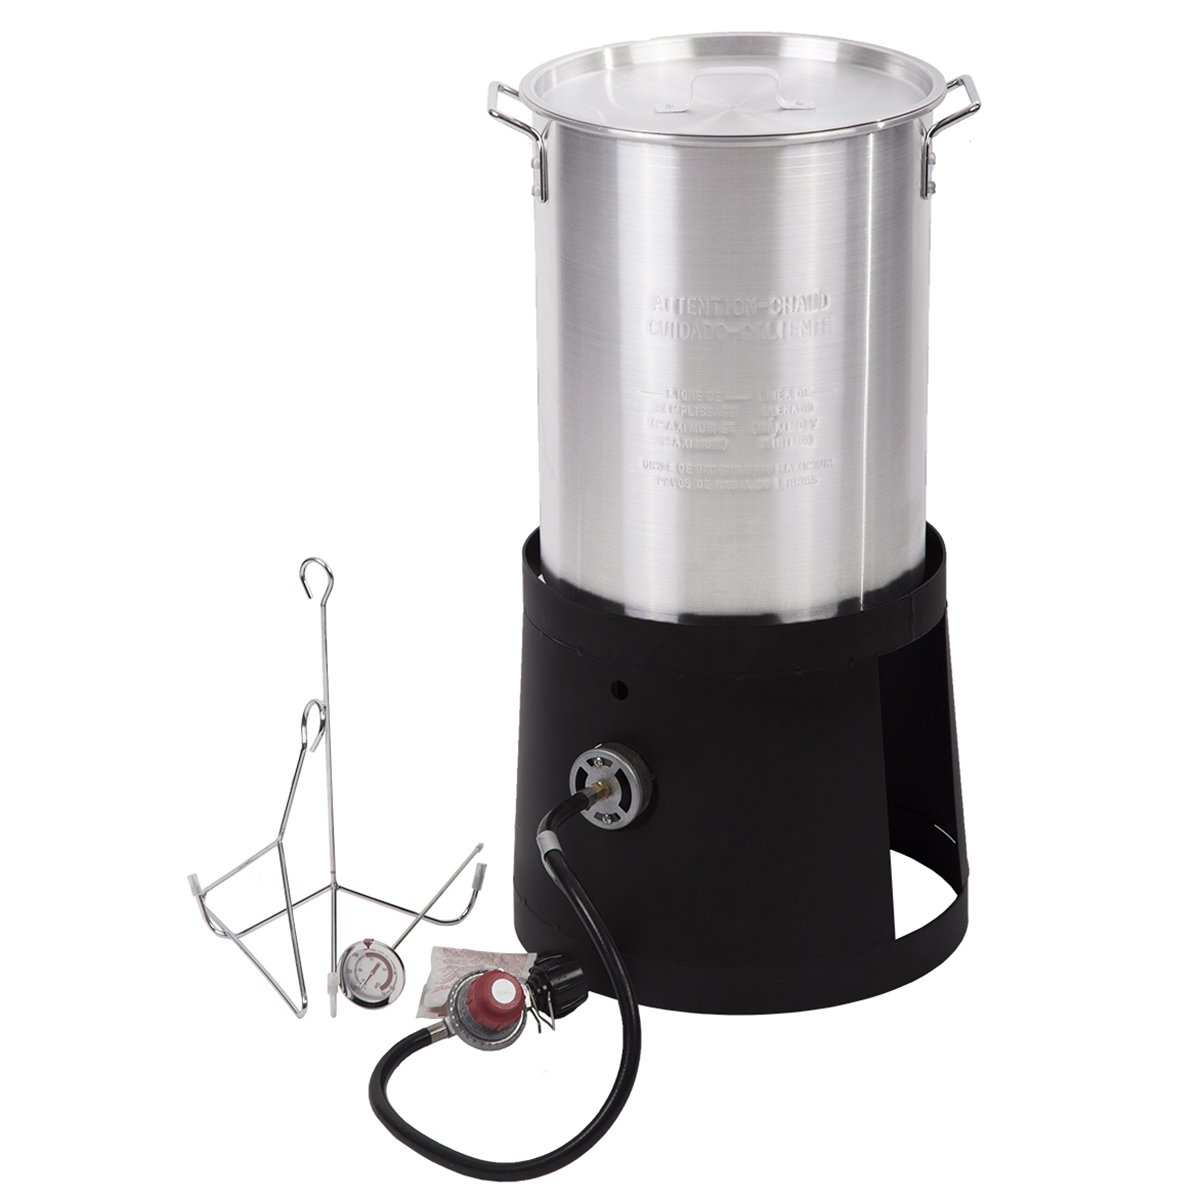 BestMassage Turkey Fryer Kit Portable Propane Cooker with 30-Quart Outdoor Gas Stove Aluminum Pot with Lid by BestMassage